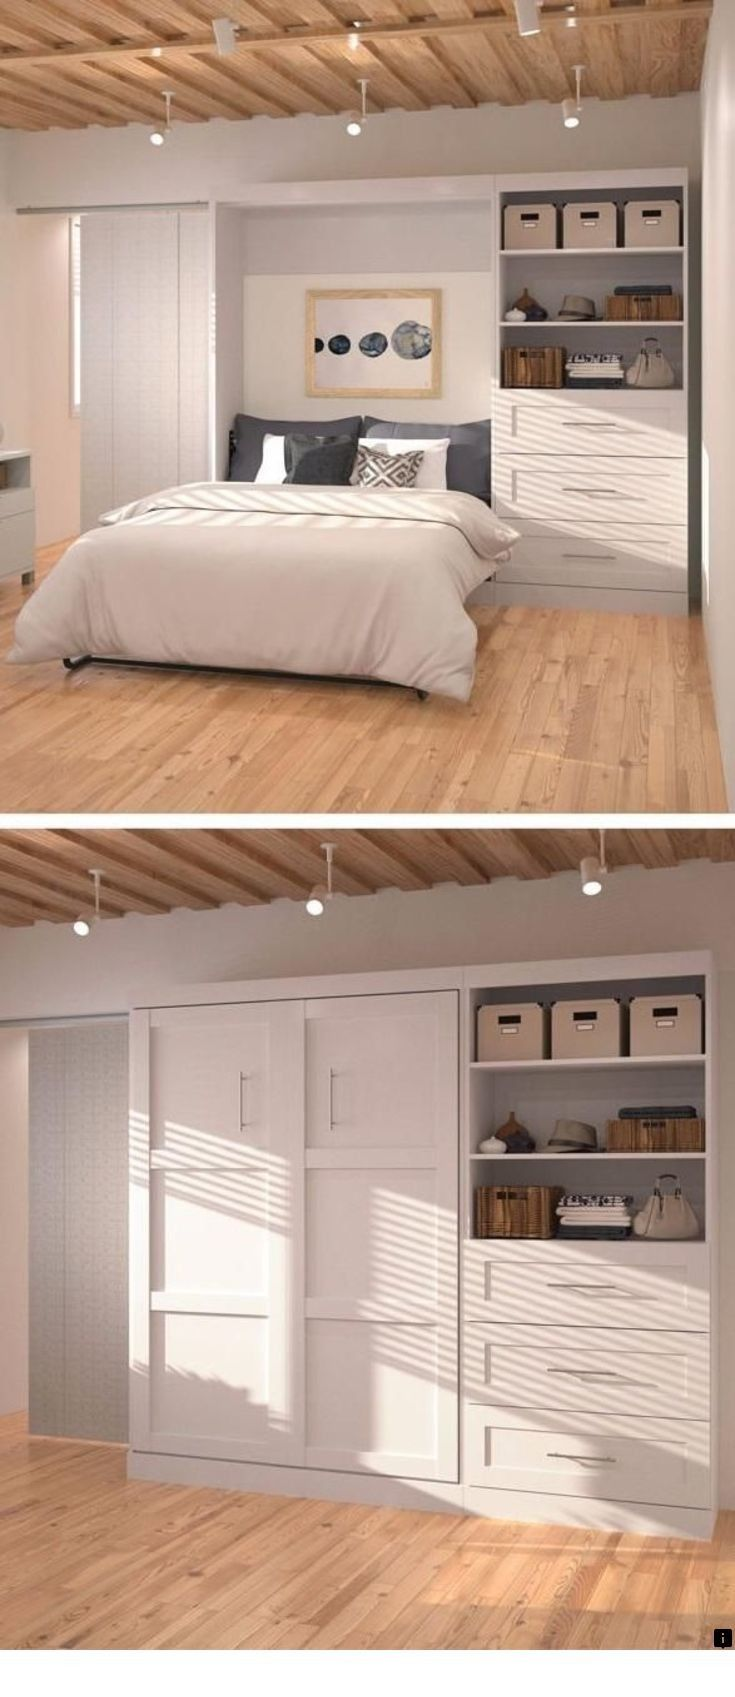 >>Go to the webpage to read more on wall folding bed